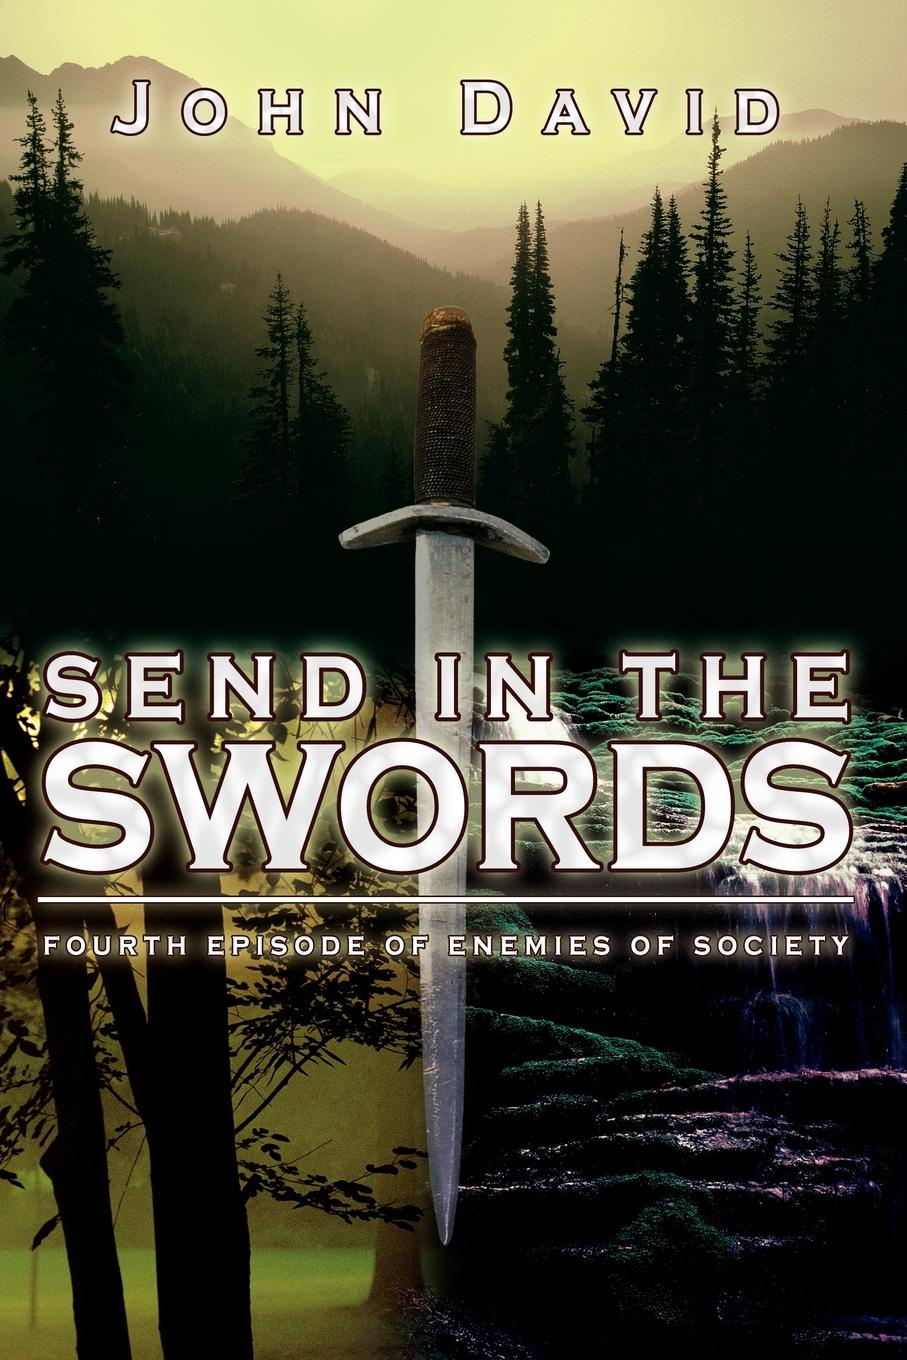 John David Send in the Swords. fourth episode of Enemies of Society circle of enemies